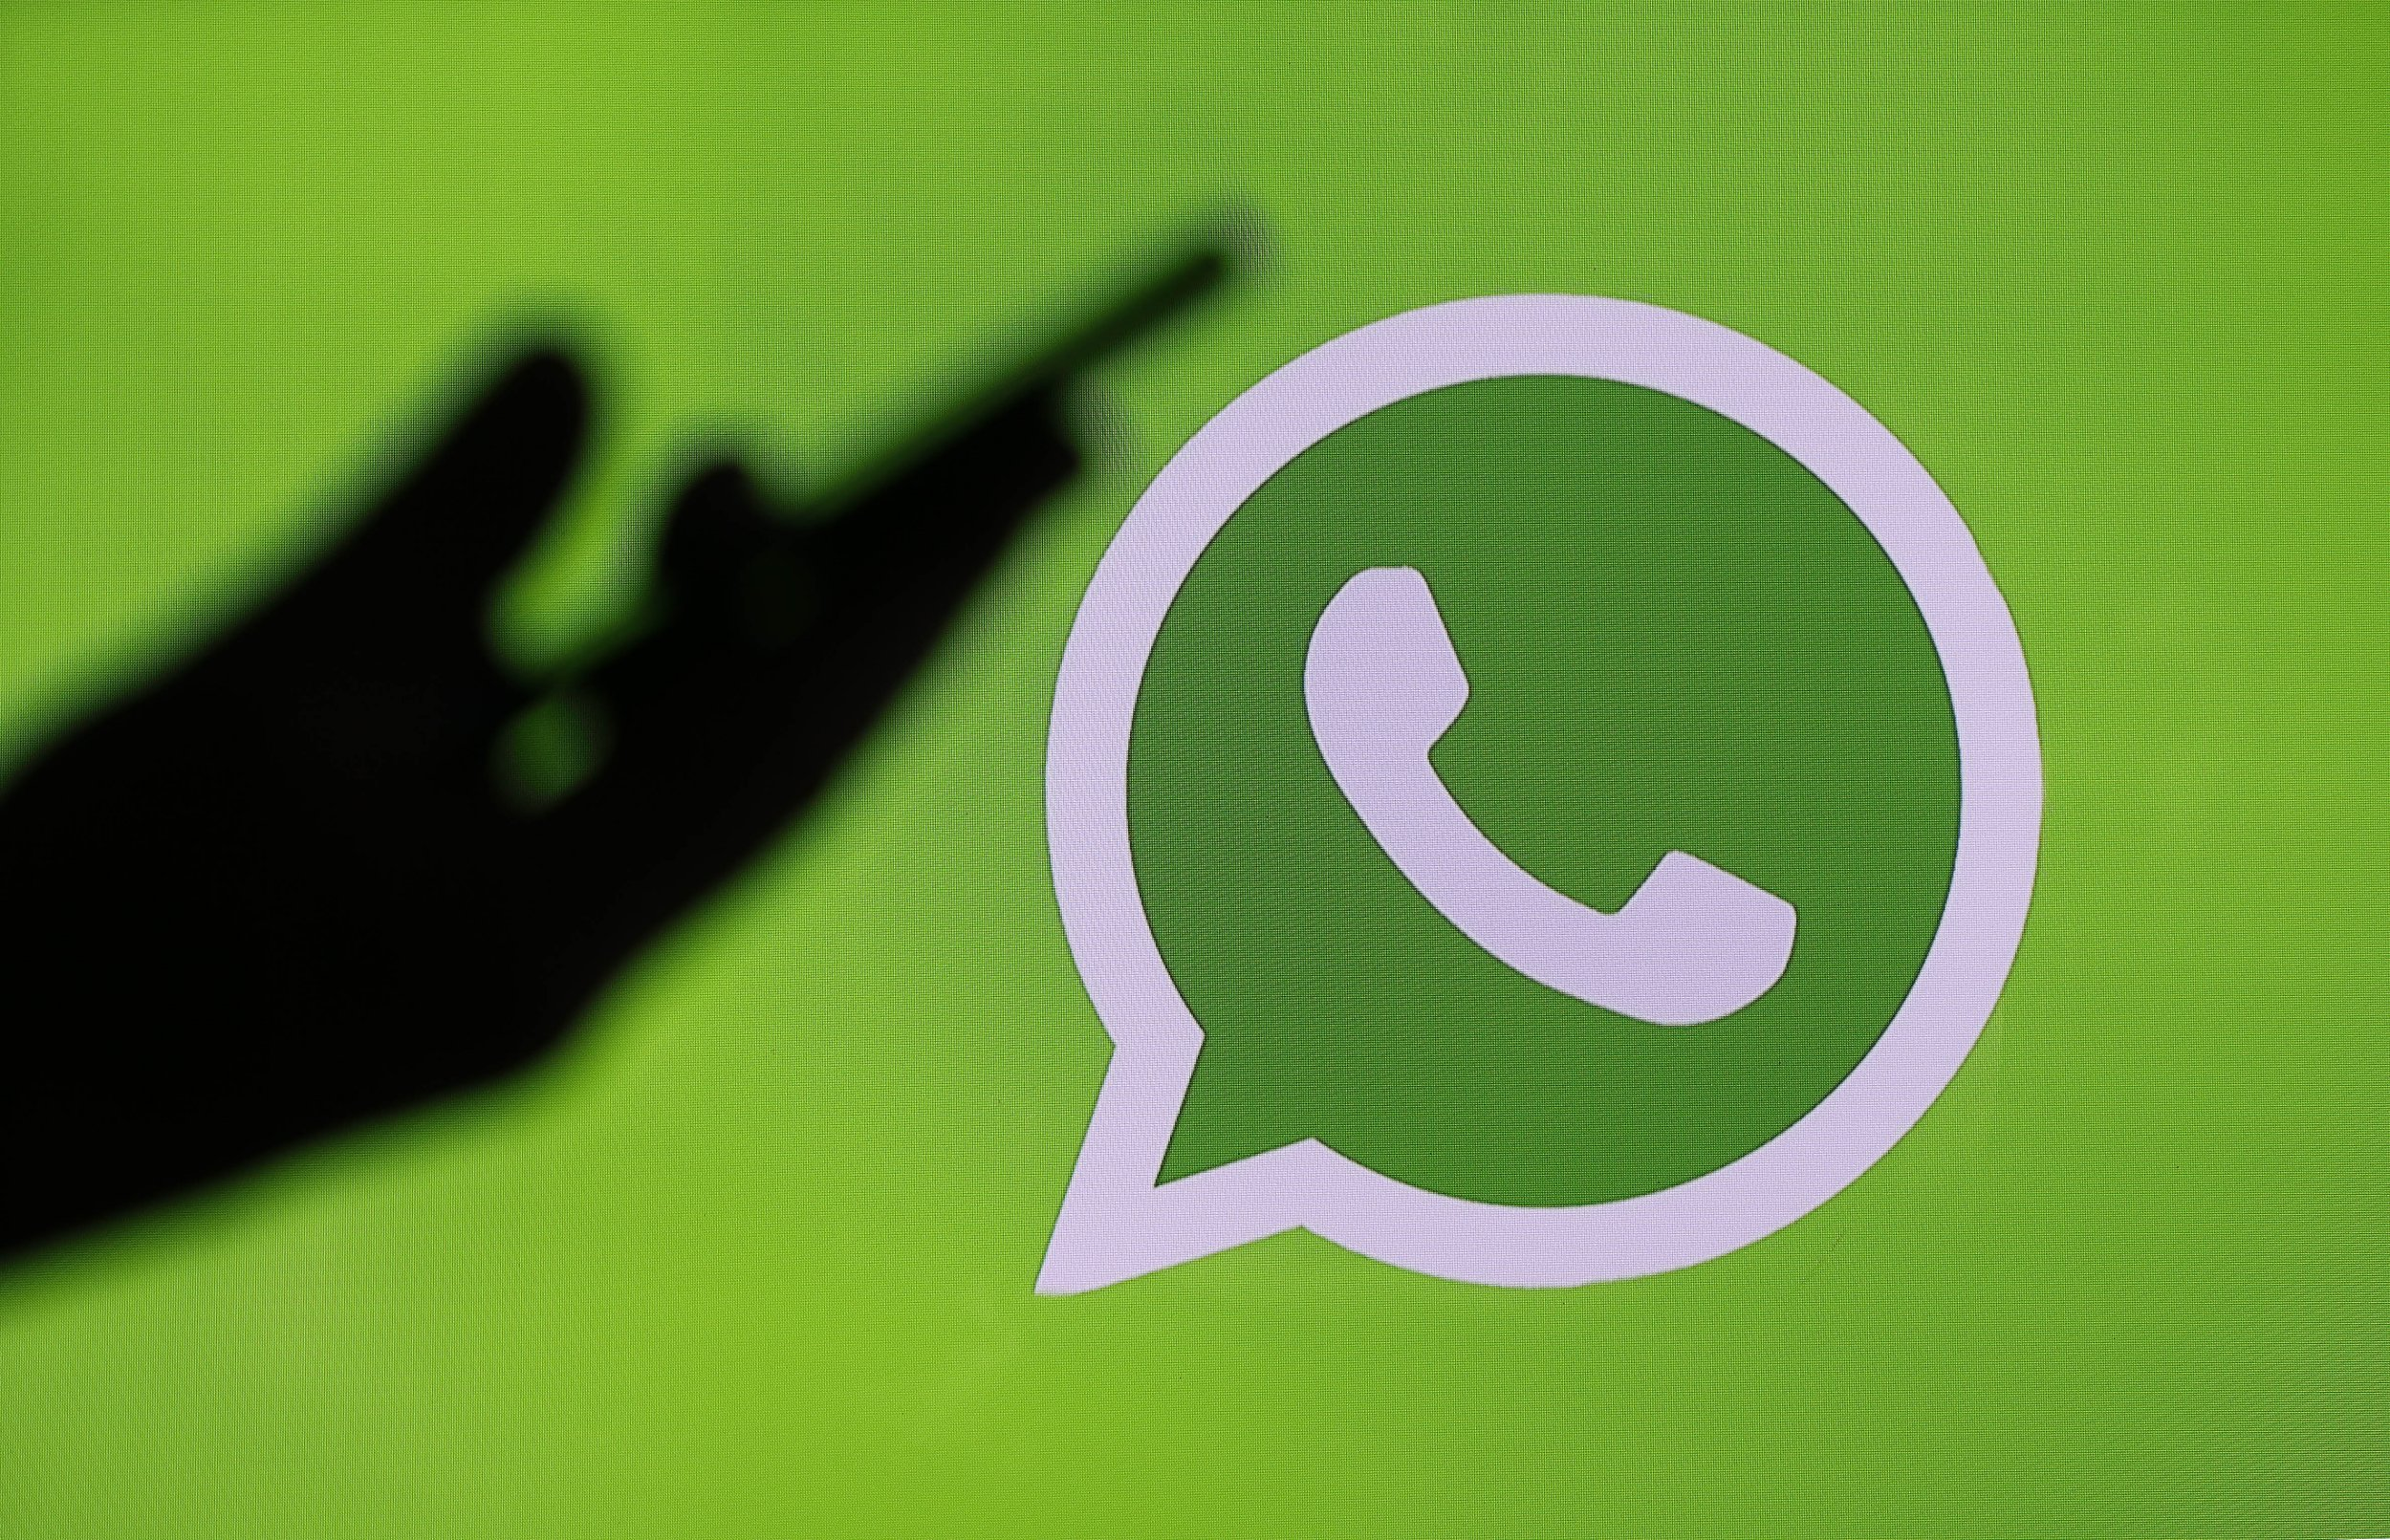 PARIS, FRANCE - MARCH 15: In this print illustration, a amicable media focus logo, WhatsApp is displayed on a shade of a mechanism on Mar 15, 2019 in Paris, France. Social media Facebook, Instagram, Messenger and WhatsApp have been influenced by a tellurian outage for scarcely 24 hours on Mar 14, 2019 slicing practical worlds to scarcely 2.3 billion intensity users. Facebook has explained a causes of malfunctions that have disrupted a networks in new days. This disaster is due to a server pattern change that has caused cascading problems Facebook is immune for a nuisance caused to users and companies that are contingent on Facebook, Instagram or WhatsApp to run their business.(Photo by Chesnot/Getty Images)